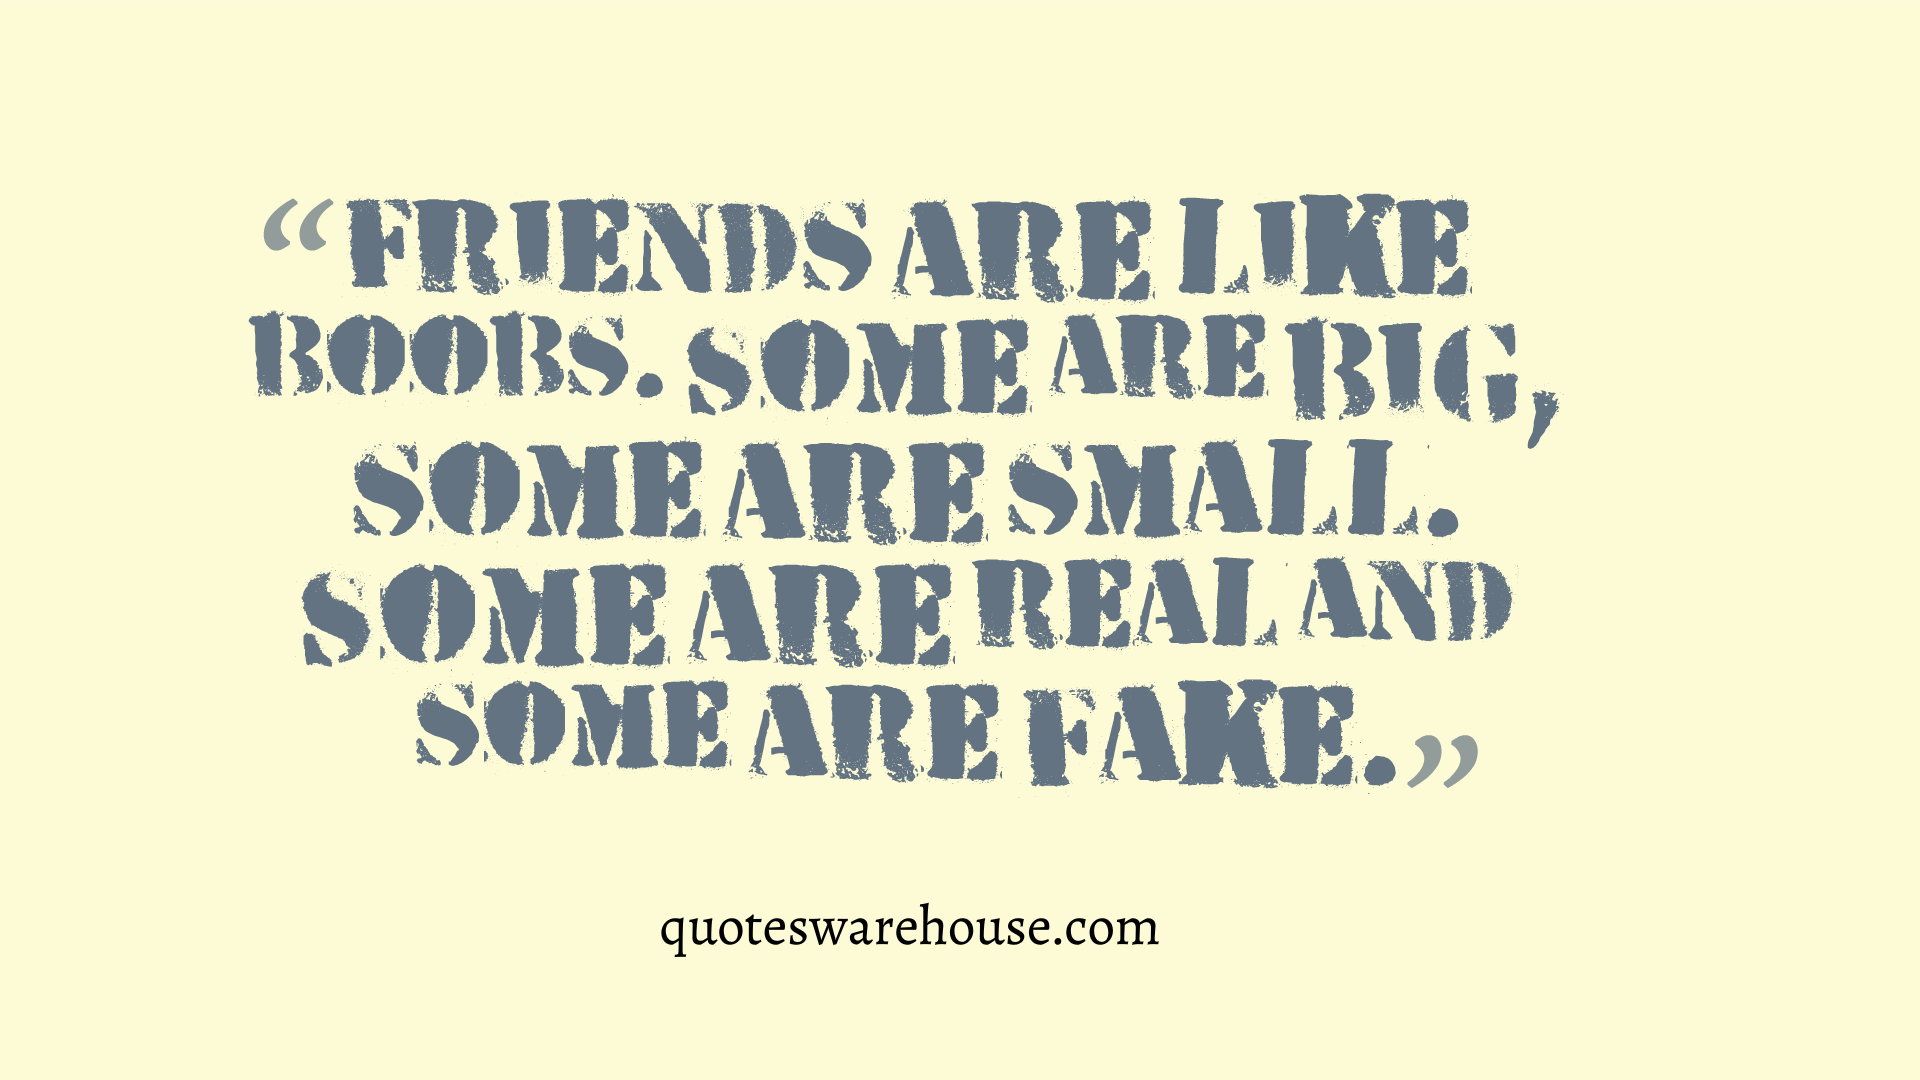 Some Great Quotes About Life Bad Friends  Google Search  Food For Thought  Pinterest  Bad